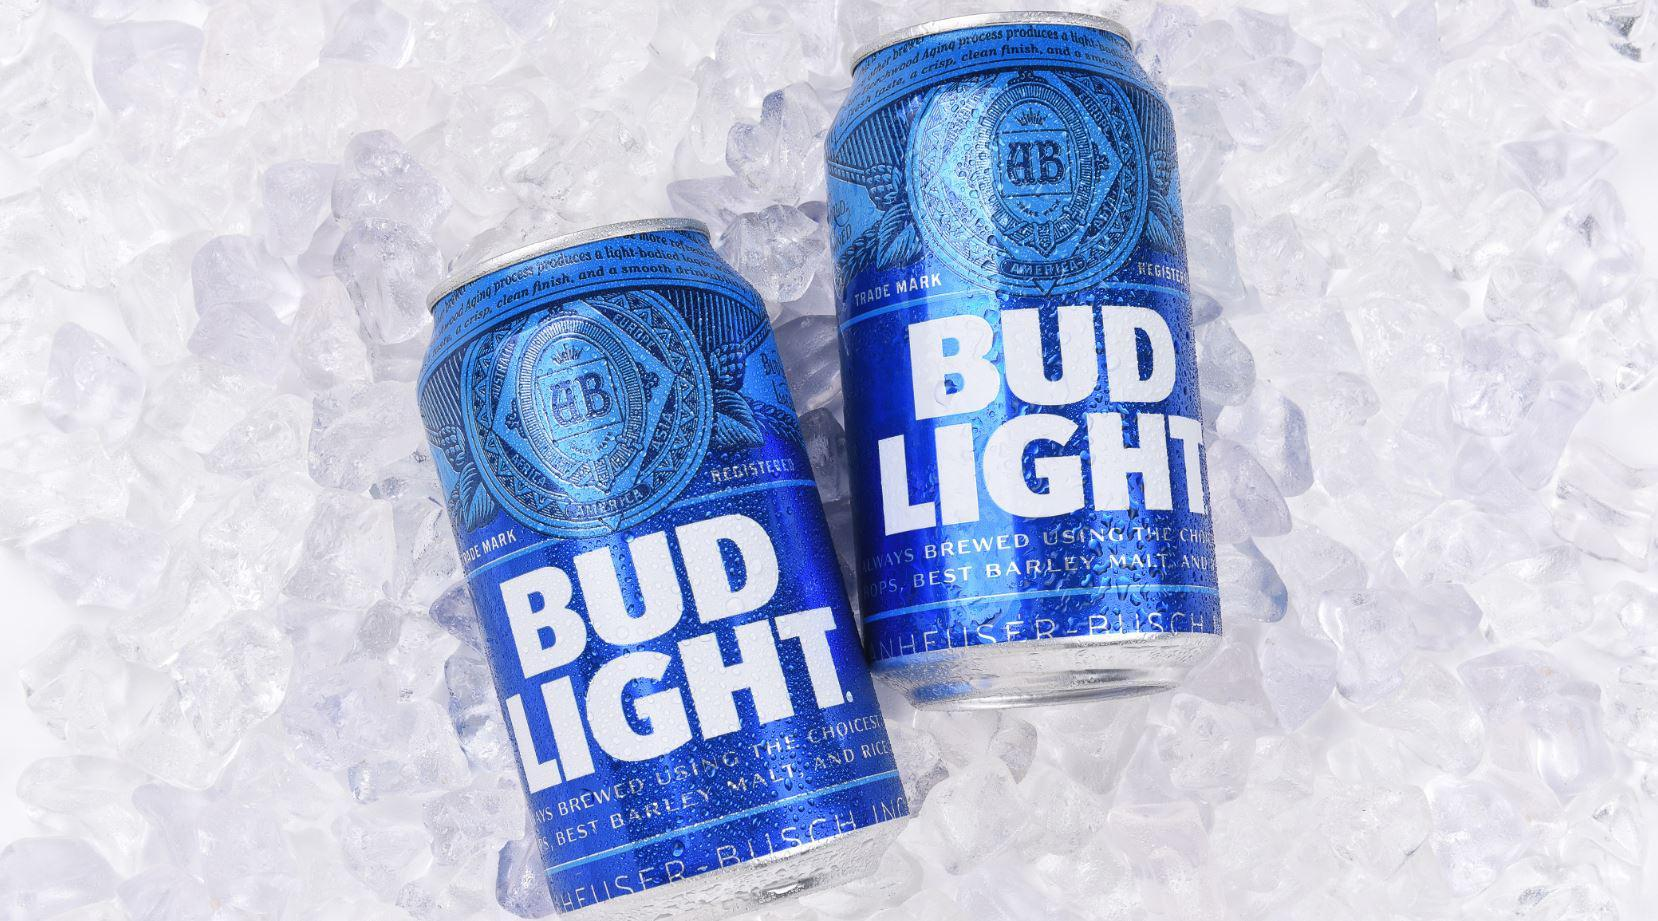 5 things to know before you drink bud light